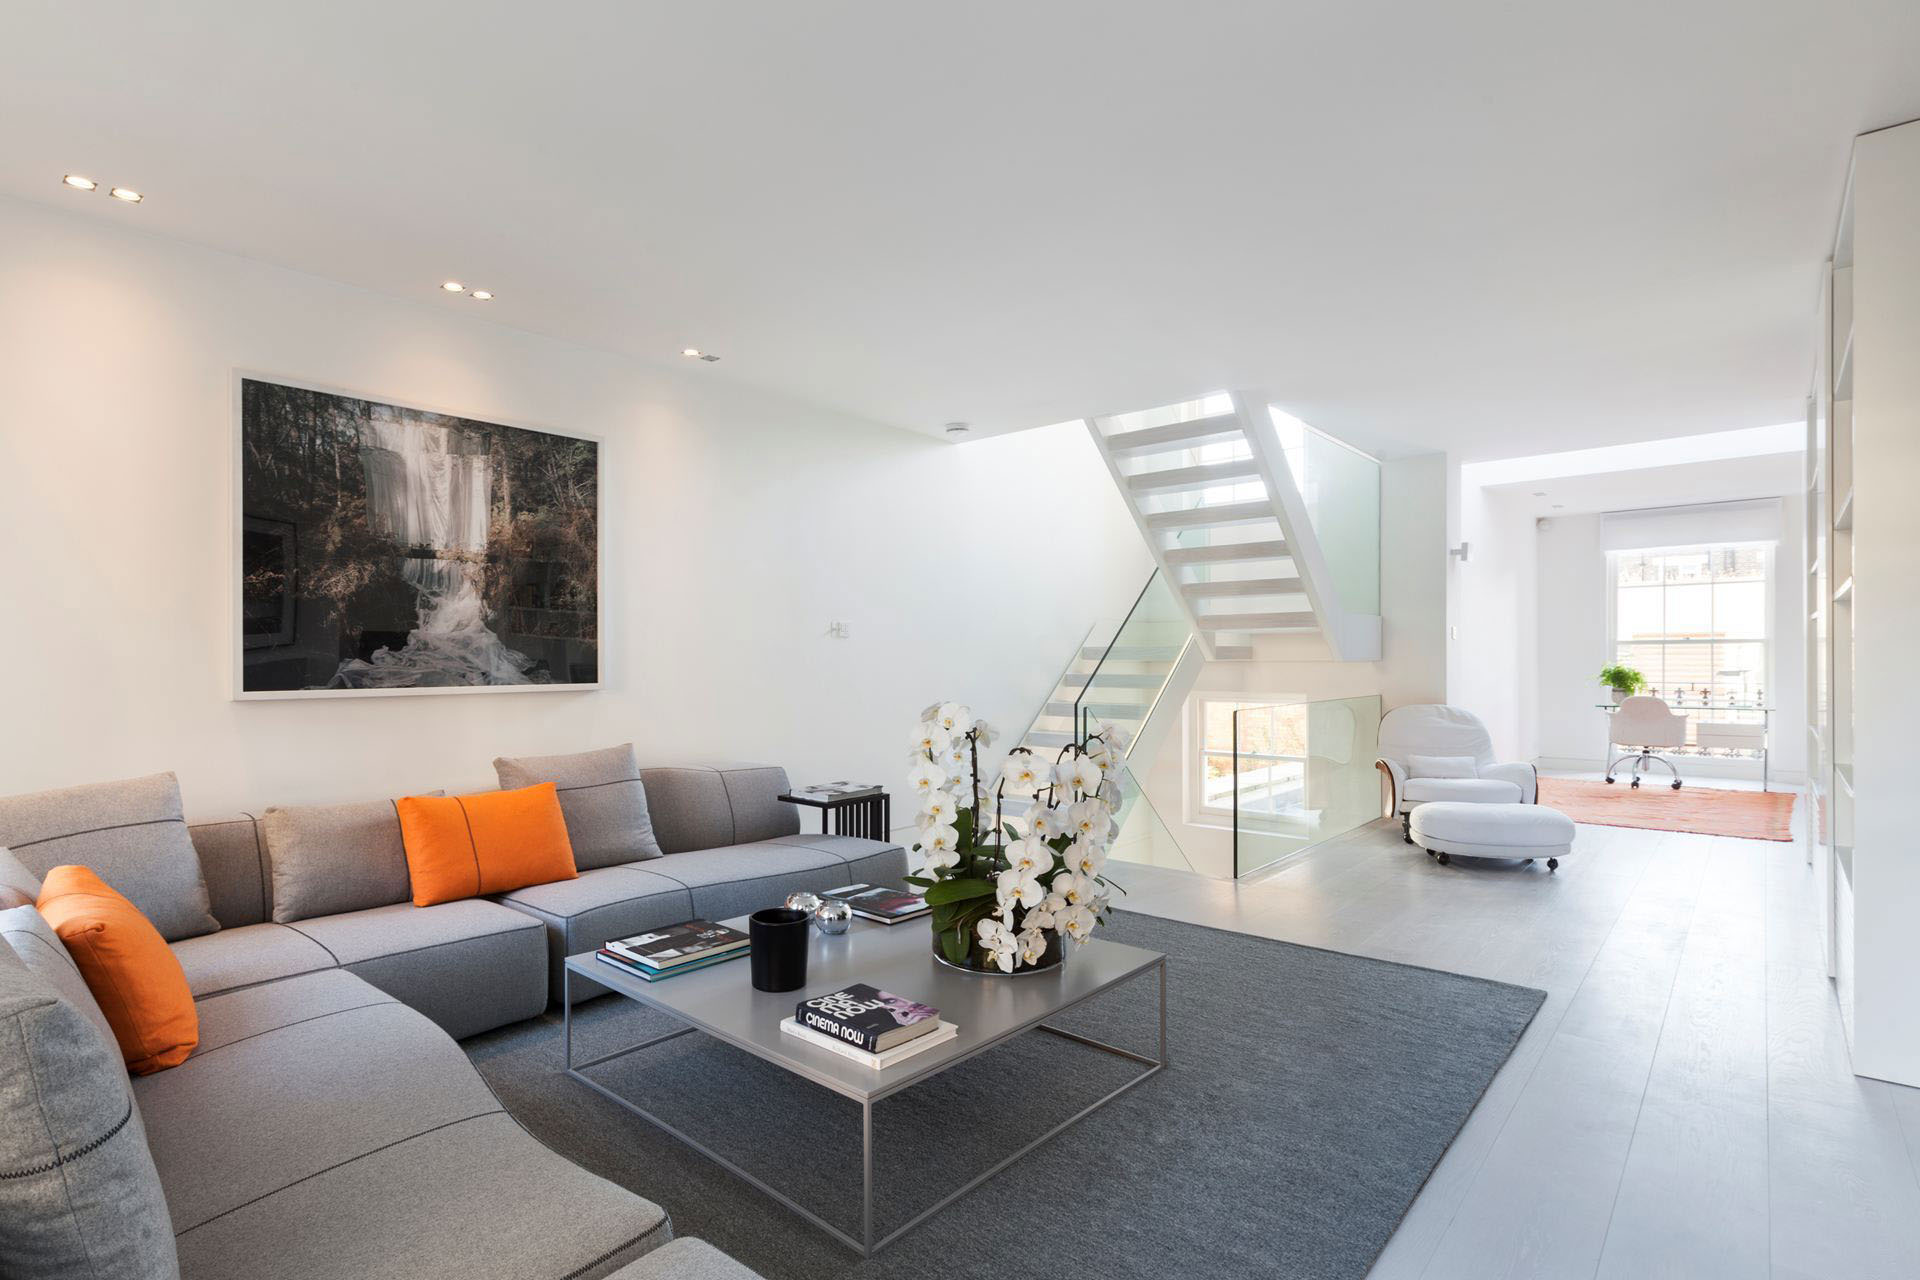 Design House Interiors Exquisite Contemporary House Near Kensington Gardens